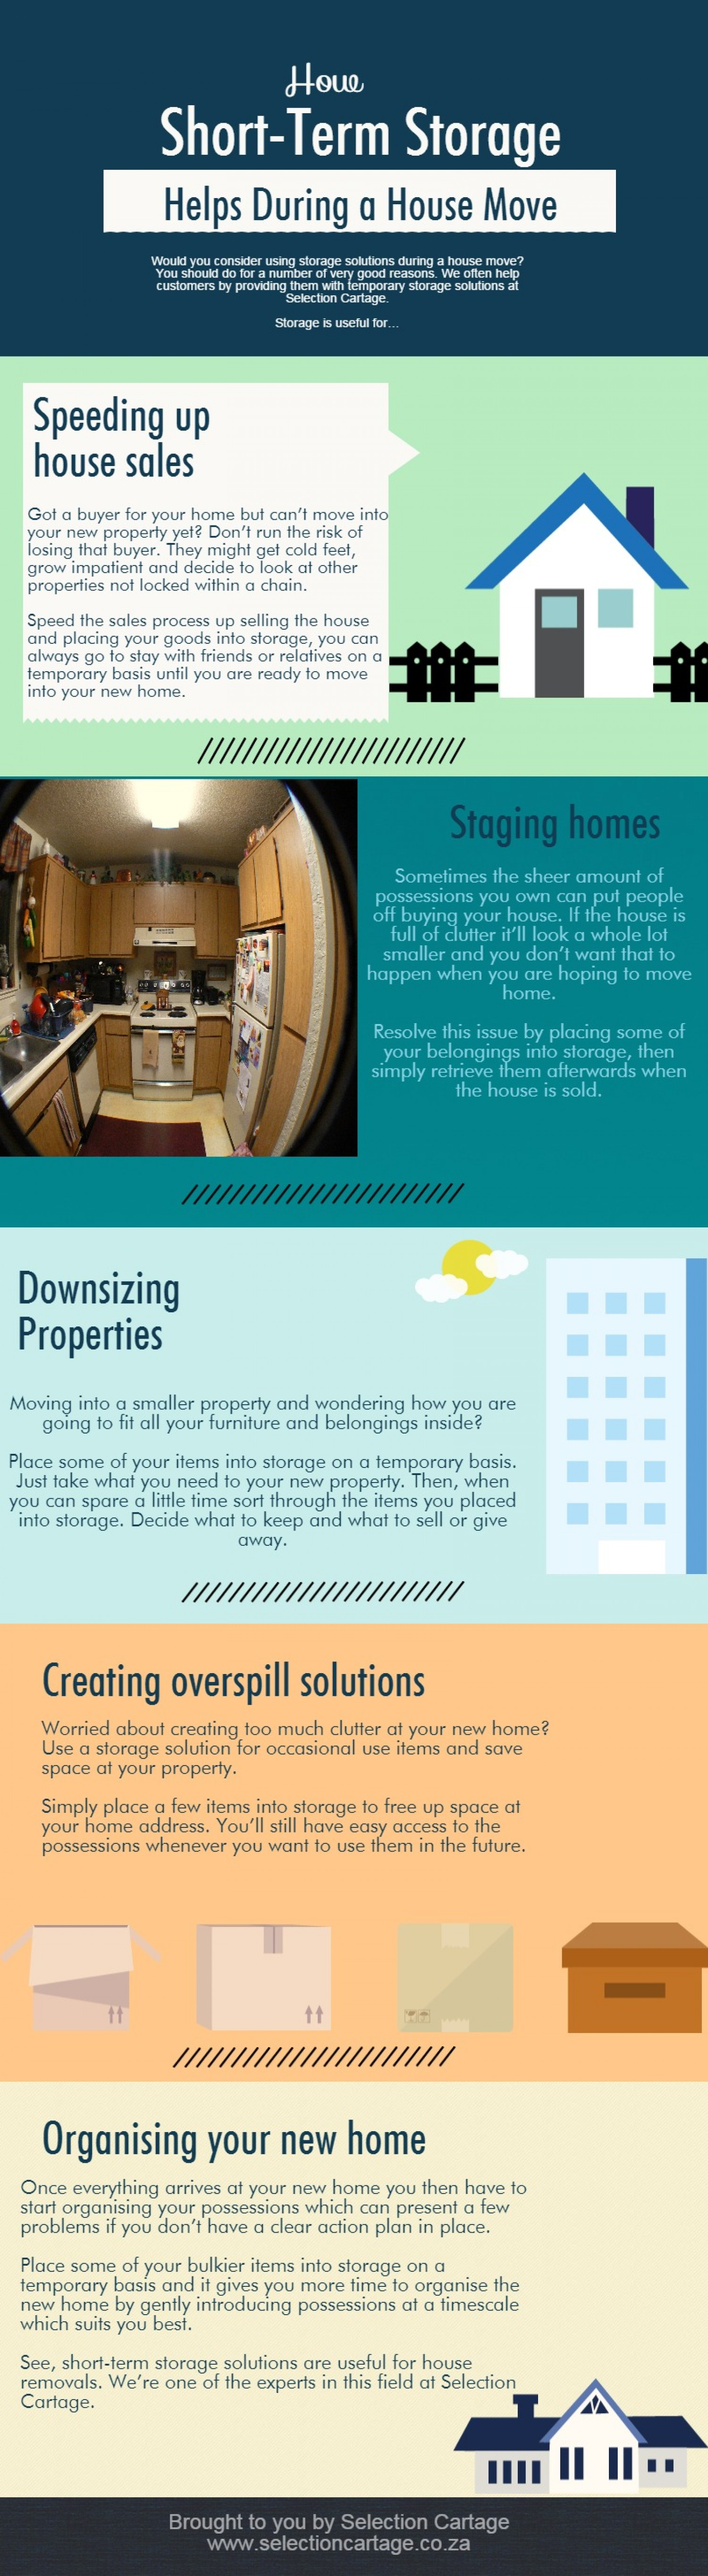 how-shortterm-storage-helps-during-a-house-move